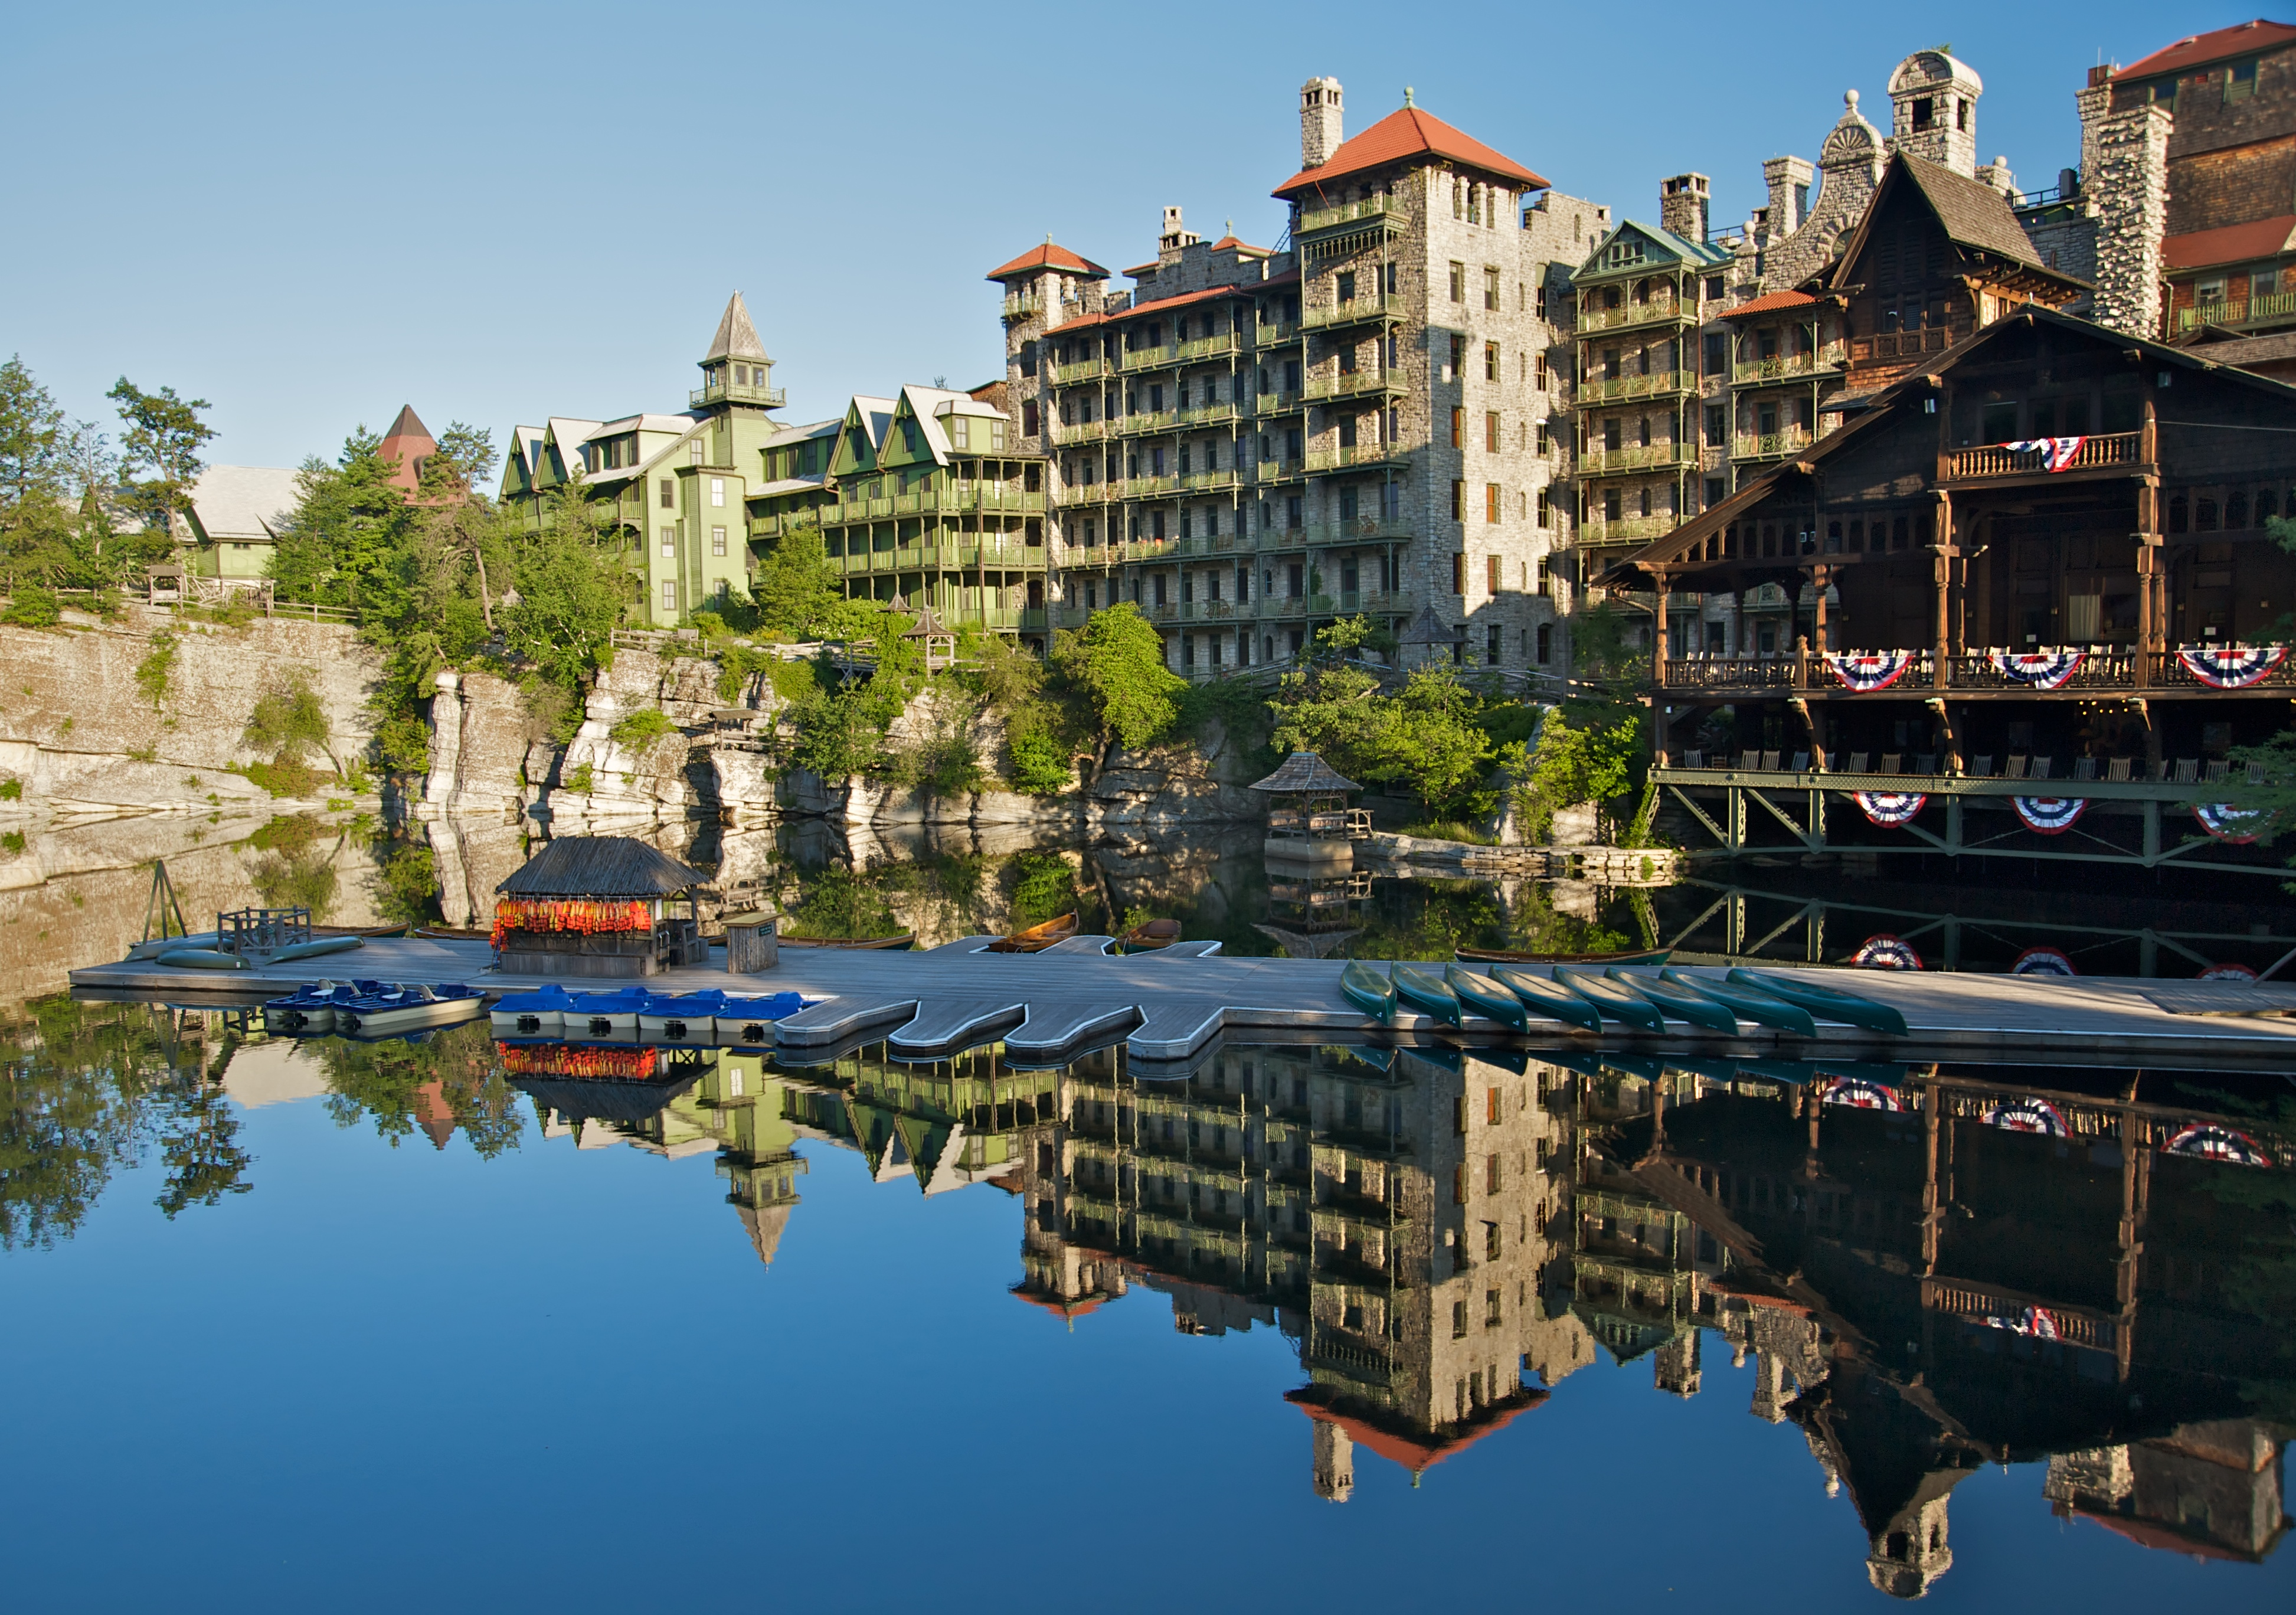 File Mohonk Mountain House 2017 Boat Dock Against Guest Rooms Frd 3041 Jpg